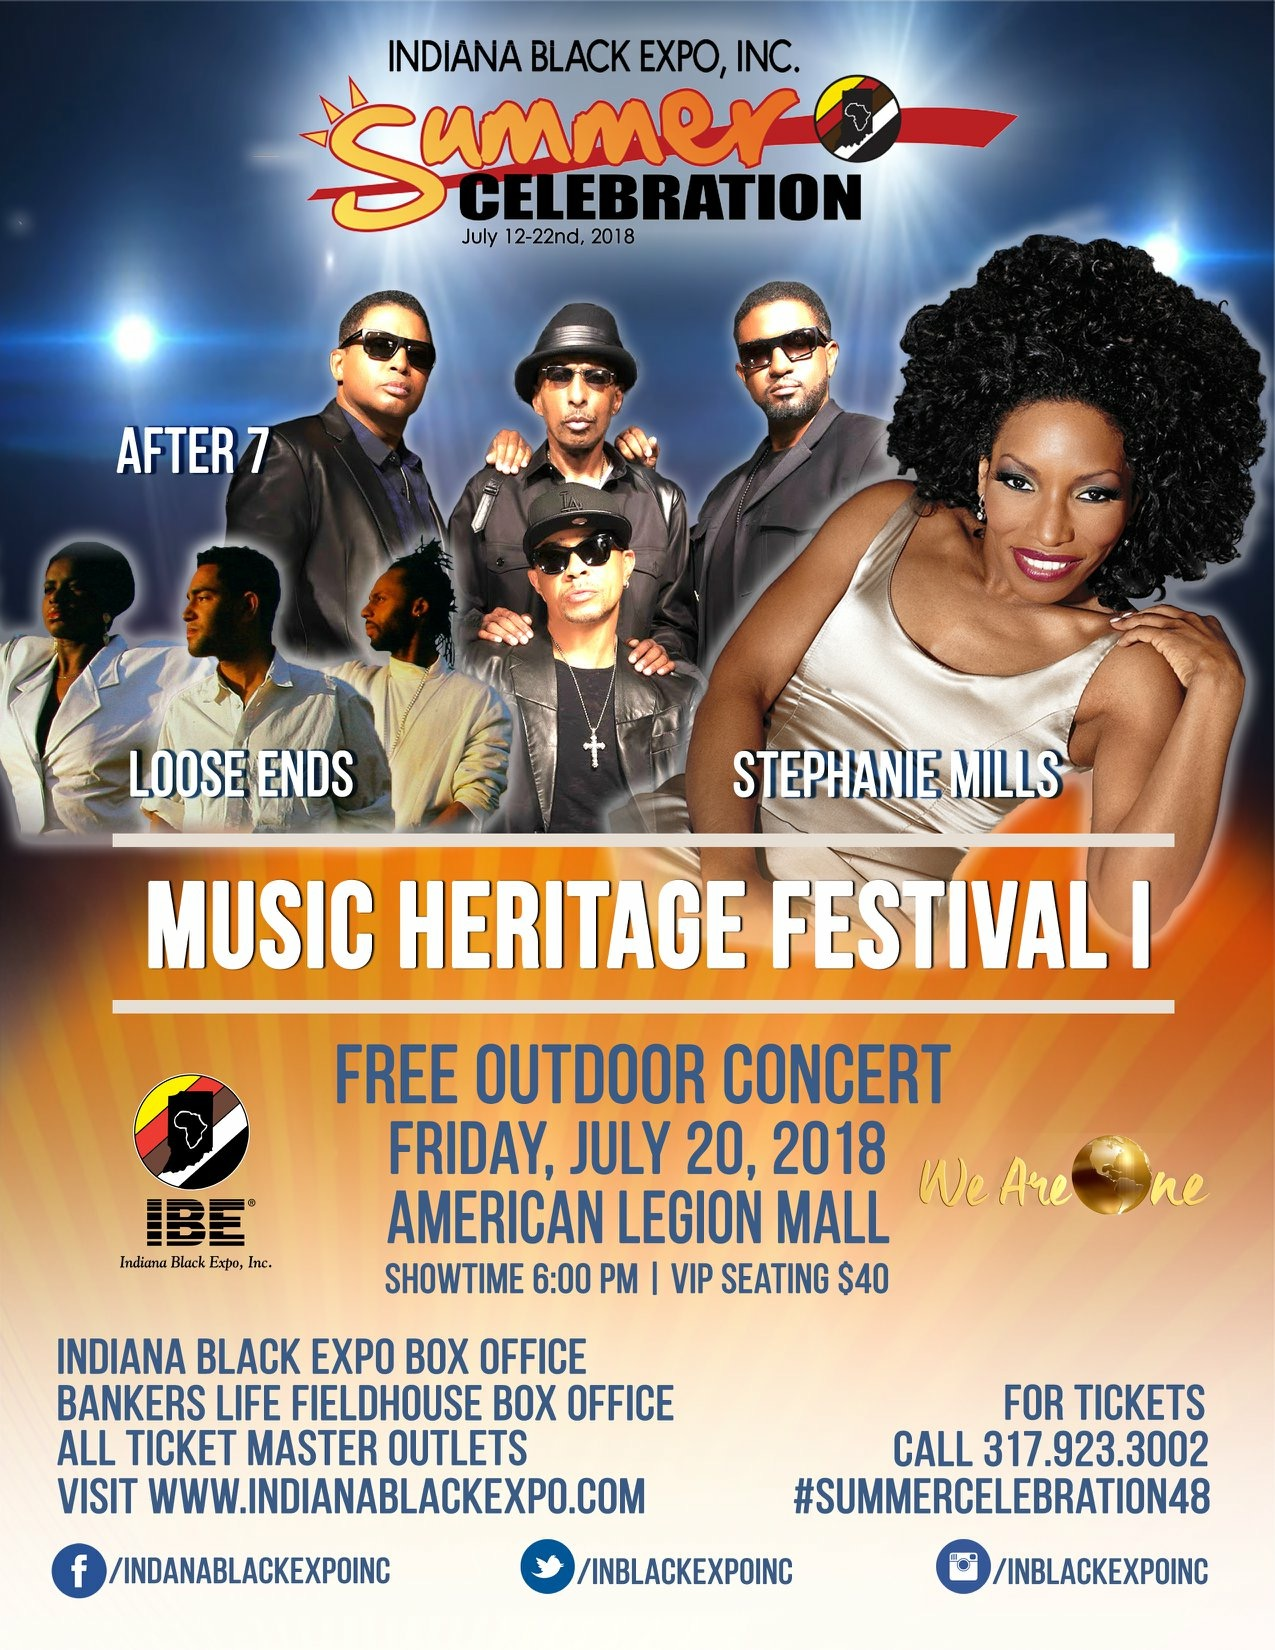 Music Heritage Festival I (Outdoor Concert) Flyer